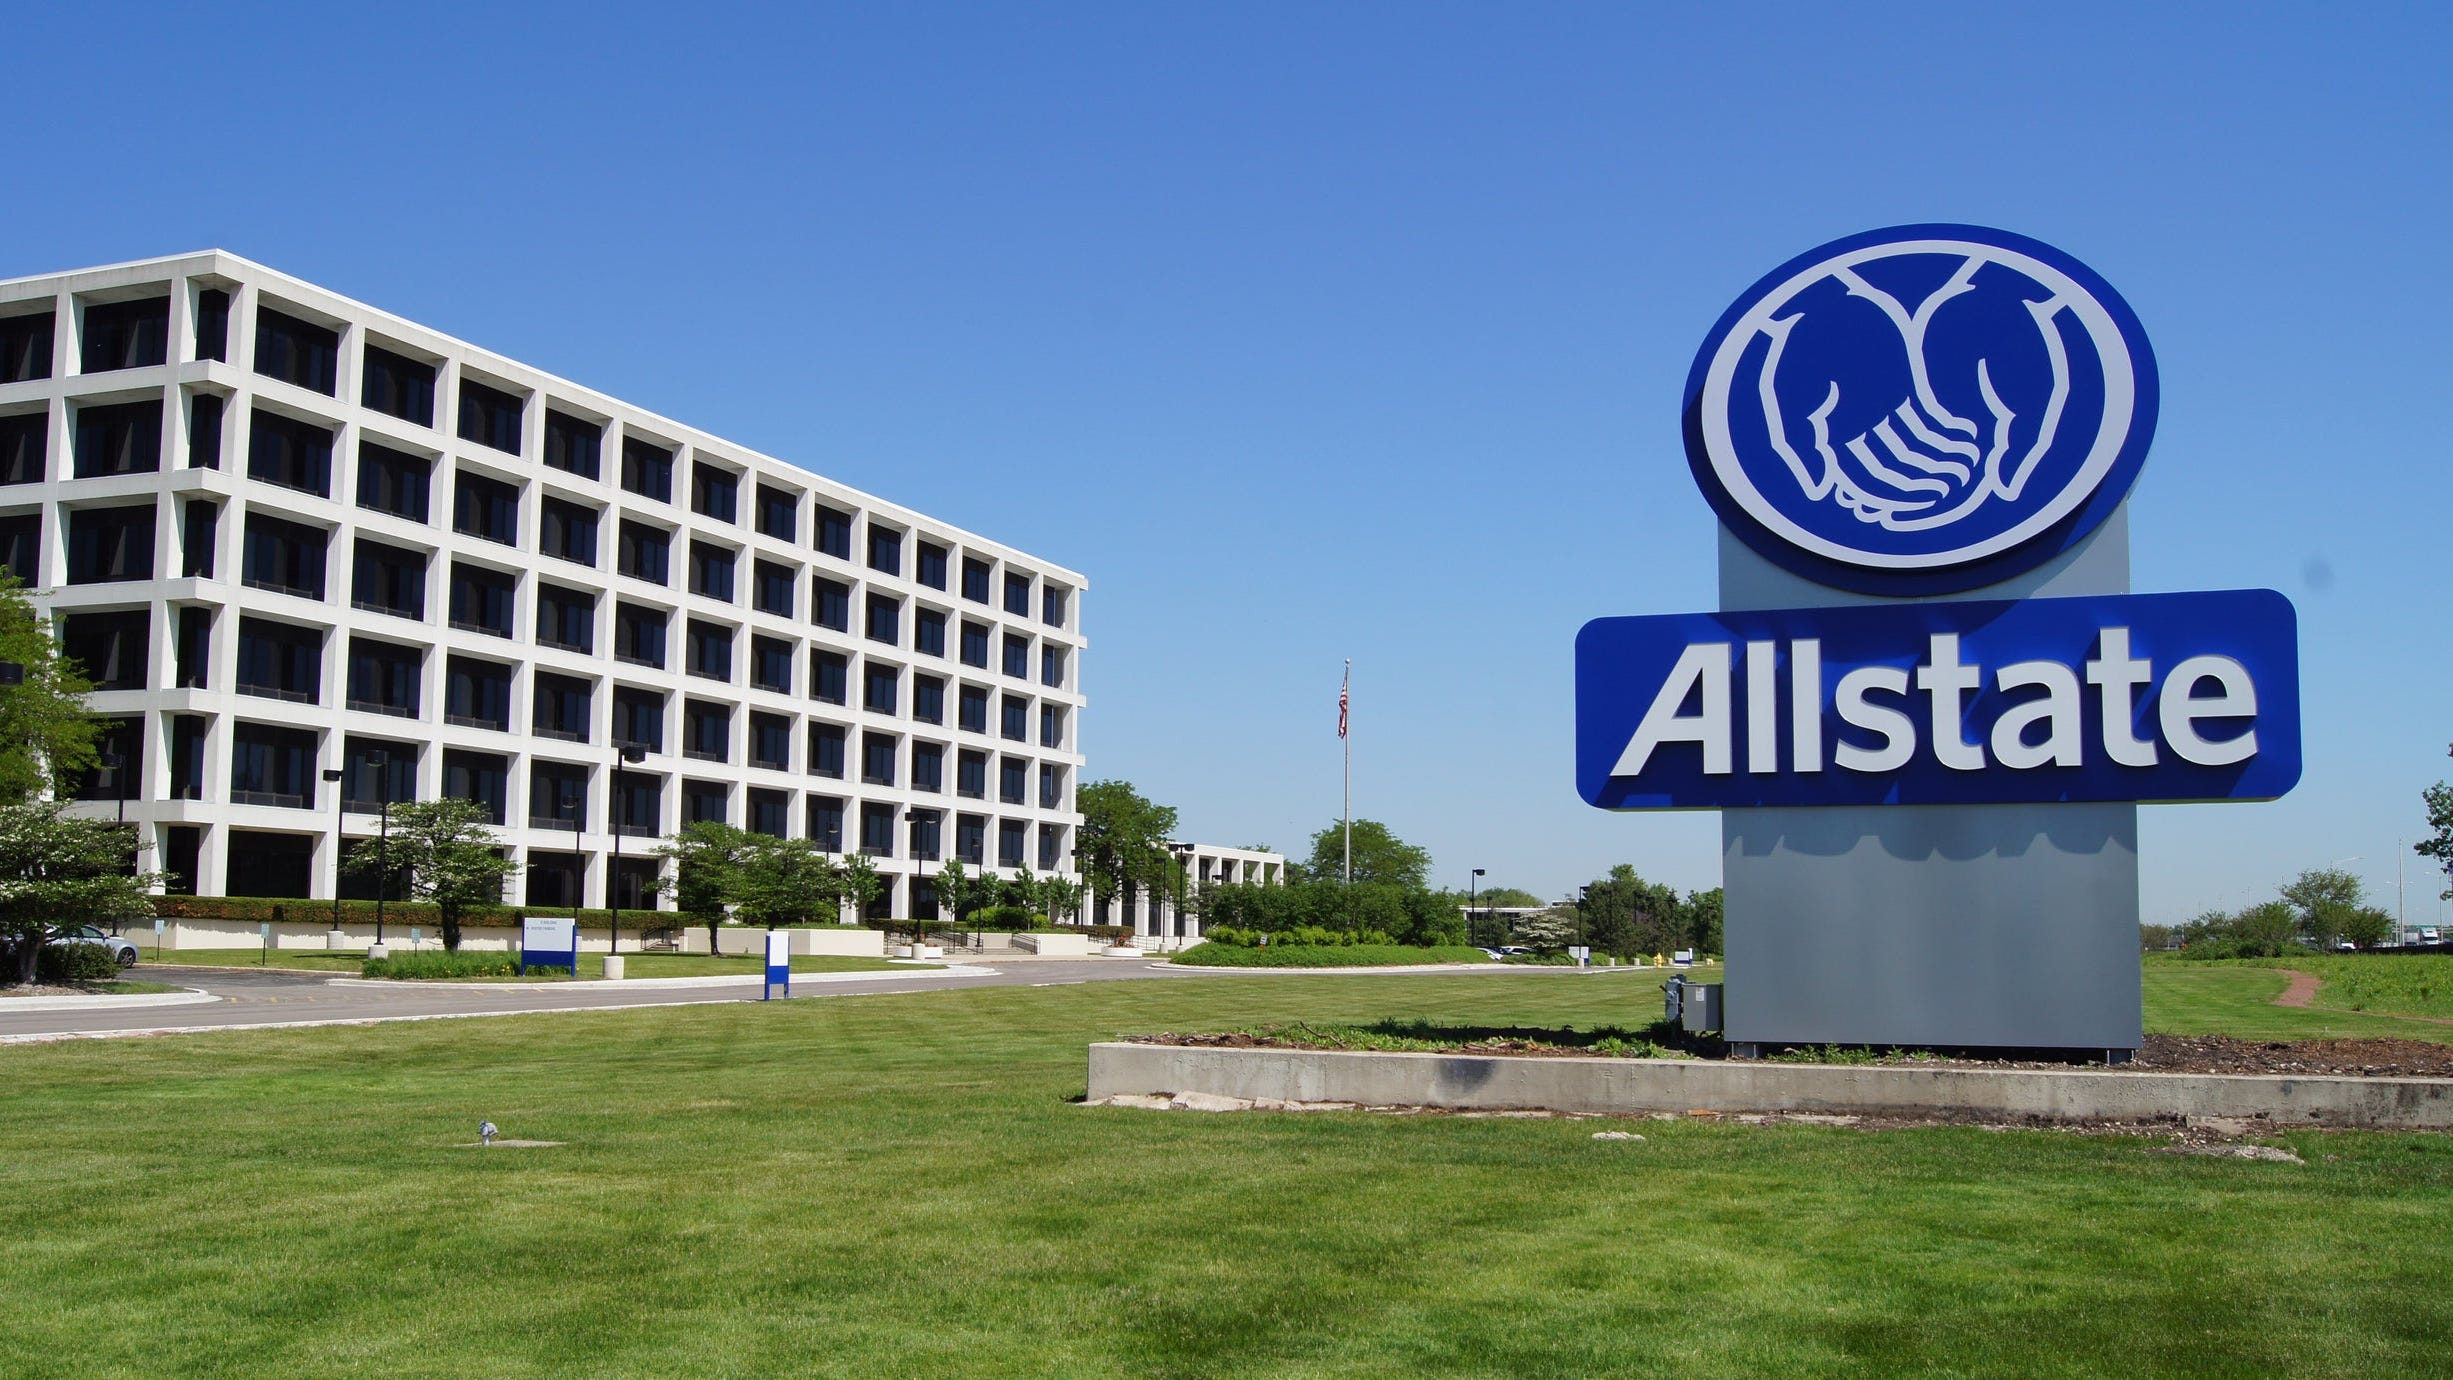 usatoday.com - Nathan Bomey, USA TODAY - Allstate insurance company acquires National General for $4 billion